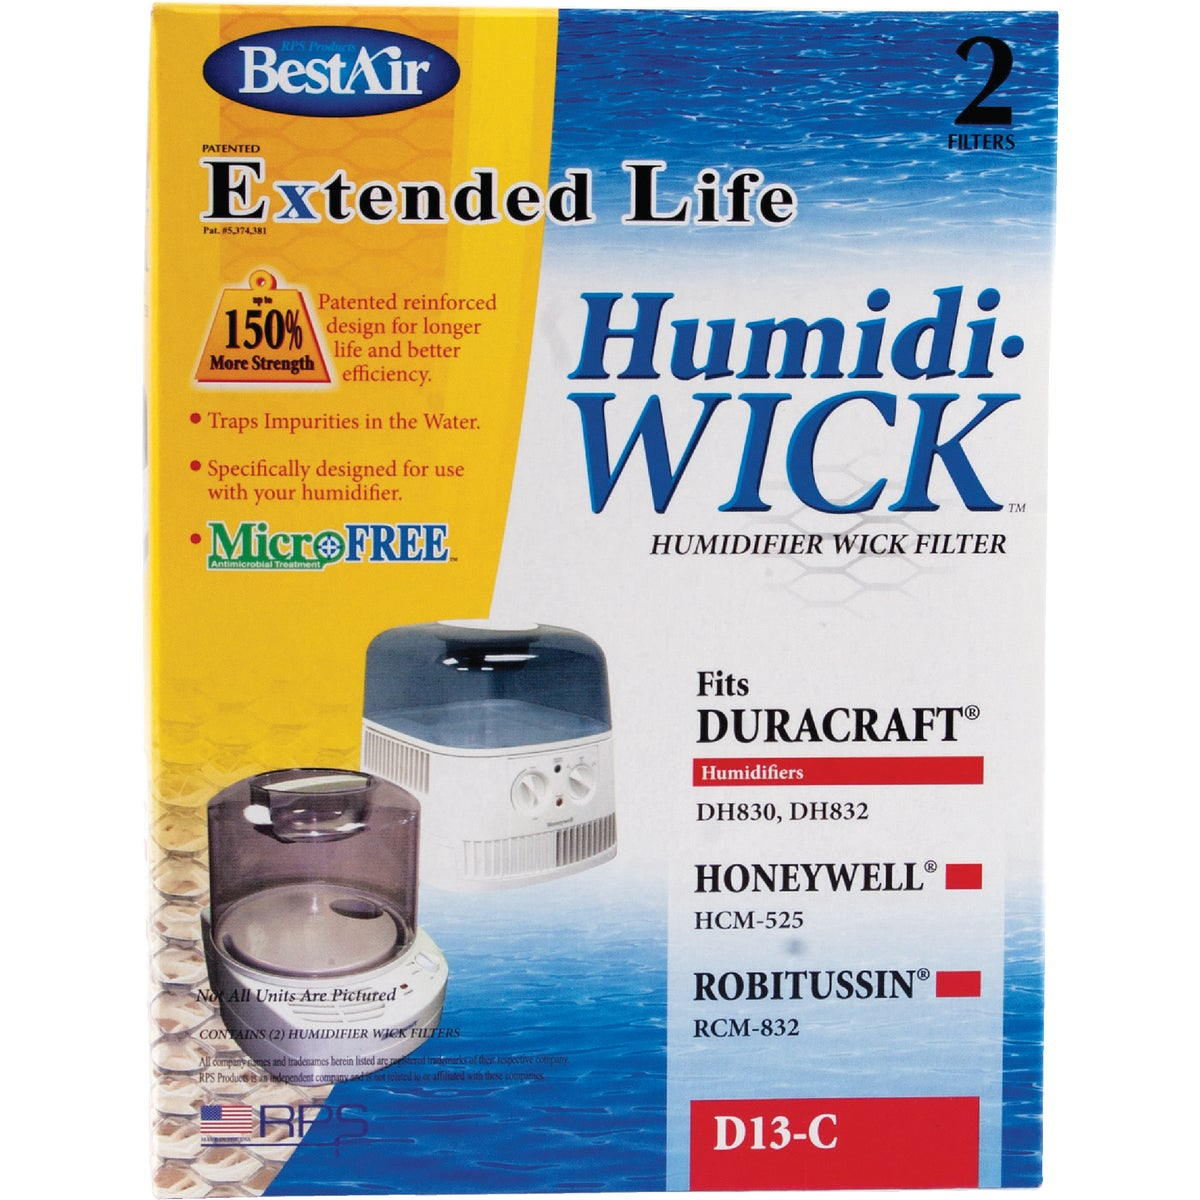 HUMIDIFIER WICK FILTER - D13 by Rps Products Inc